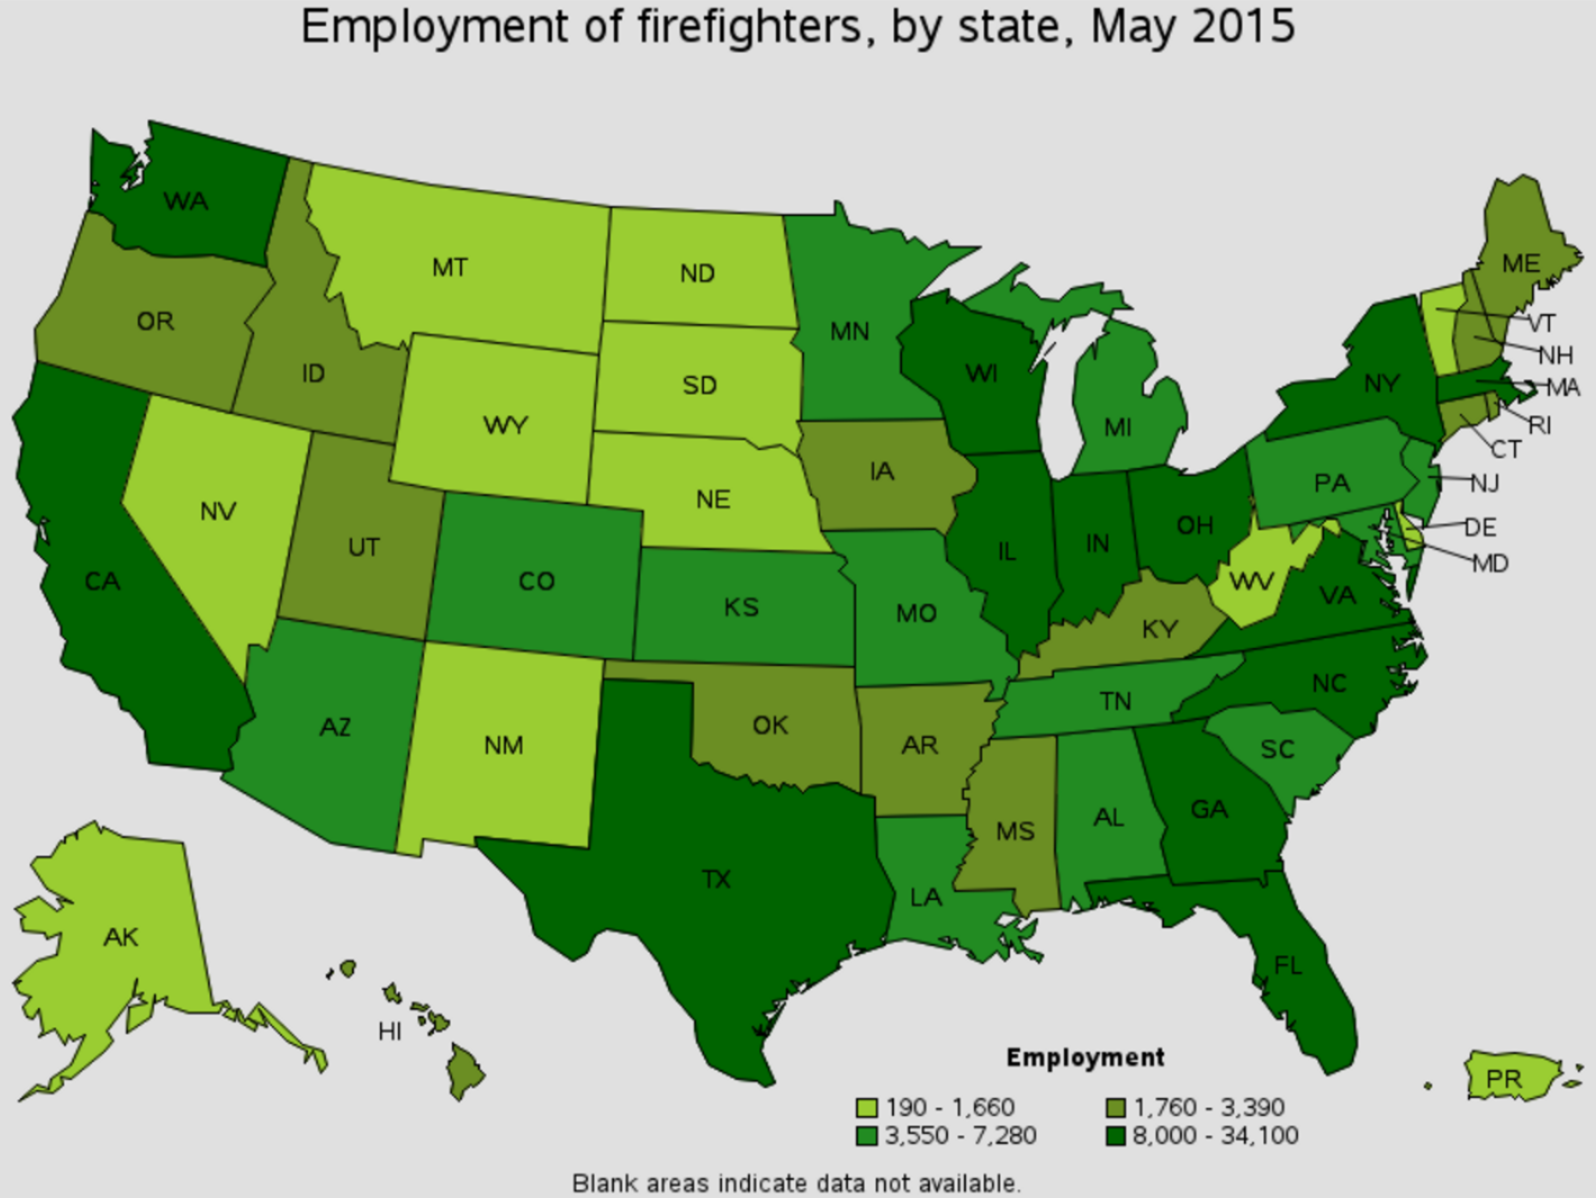 firefighter job outlook by state Whiteford Maryland